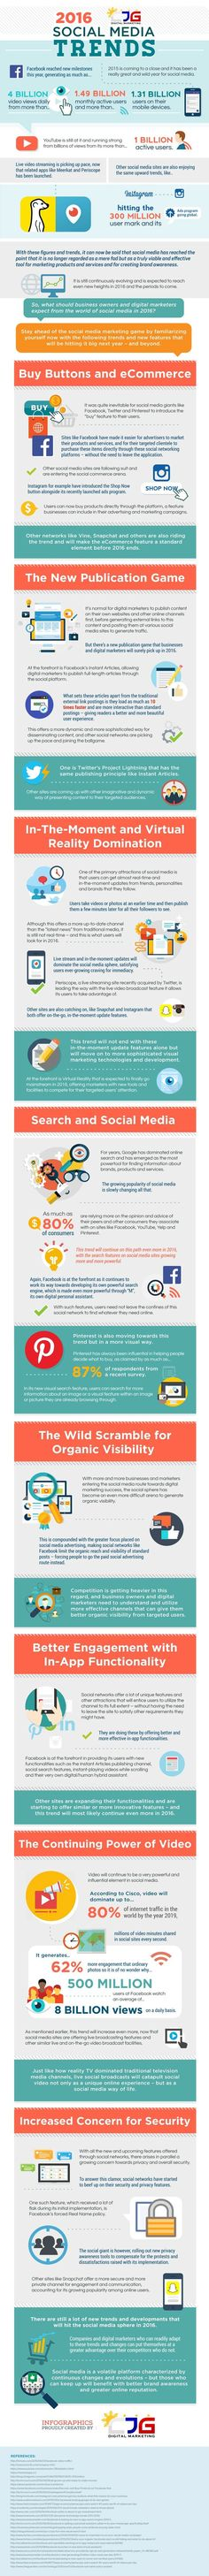 This is a really interesting look at social media trends and predictions for the upcoming year. 2015 was huge for social media and it is set to only get bigger, so it'll be interesting to see which one of these come true! #SocialMediaMarketing #SocialMediaTrends #Facebook